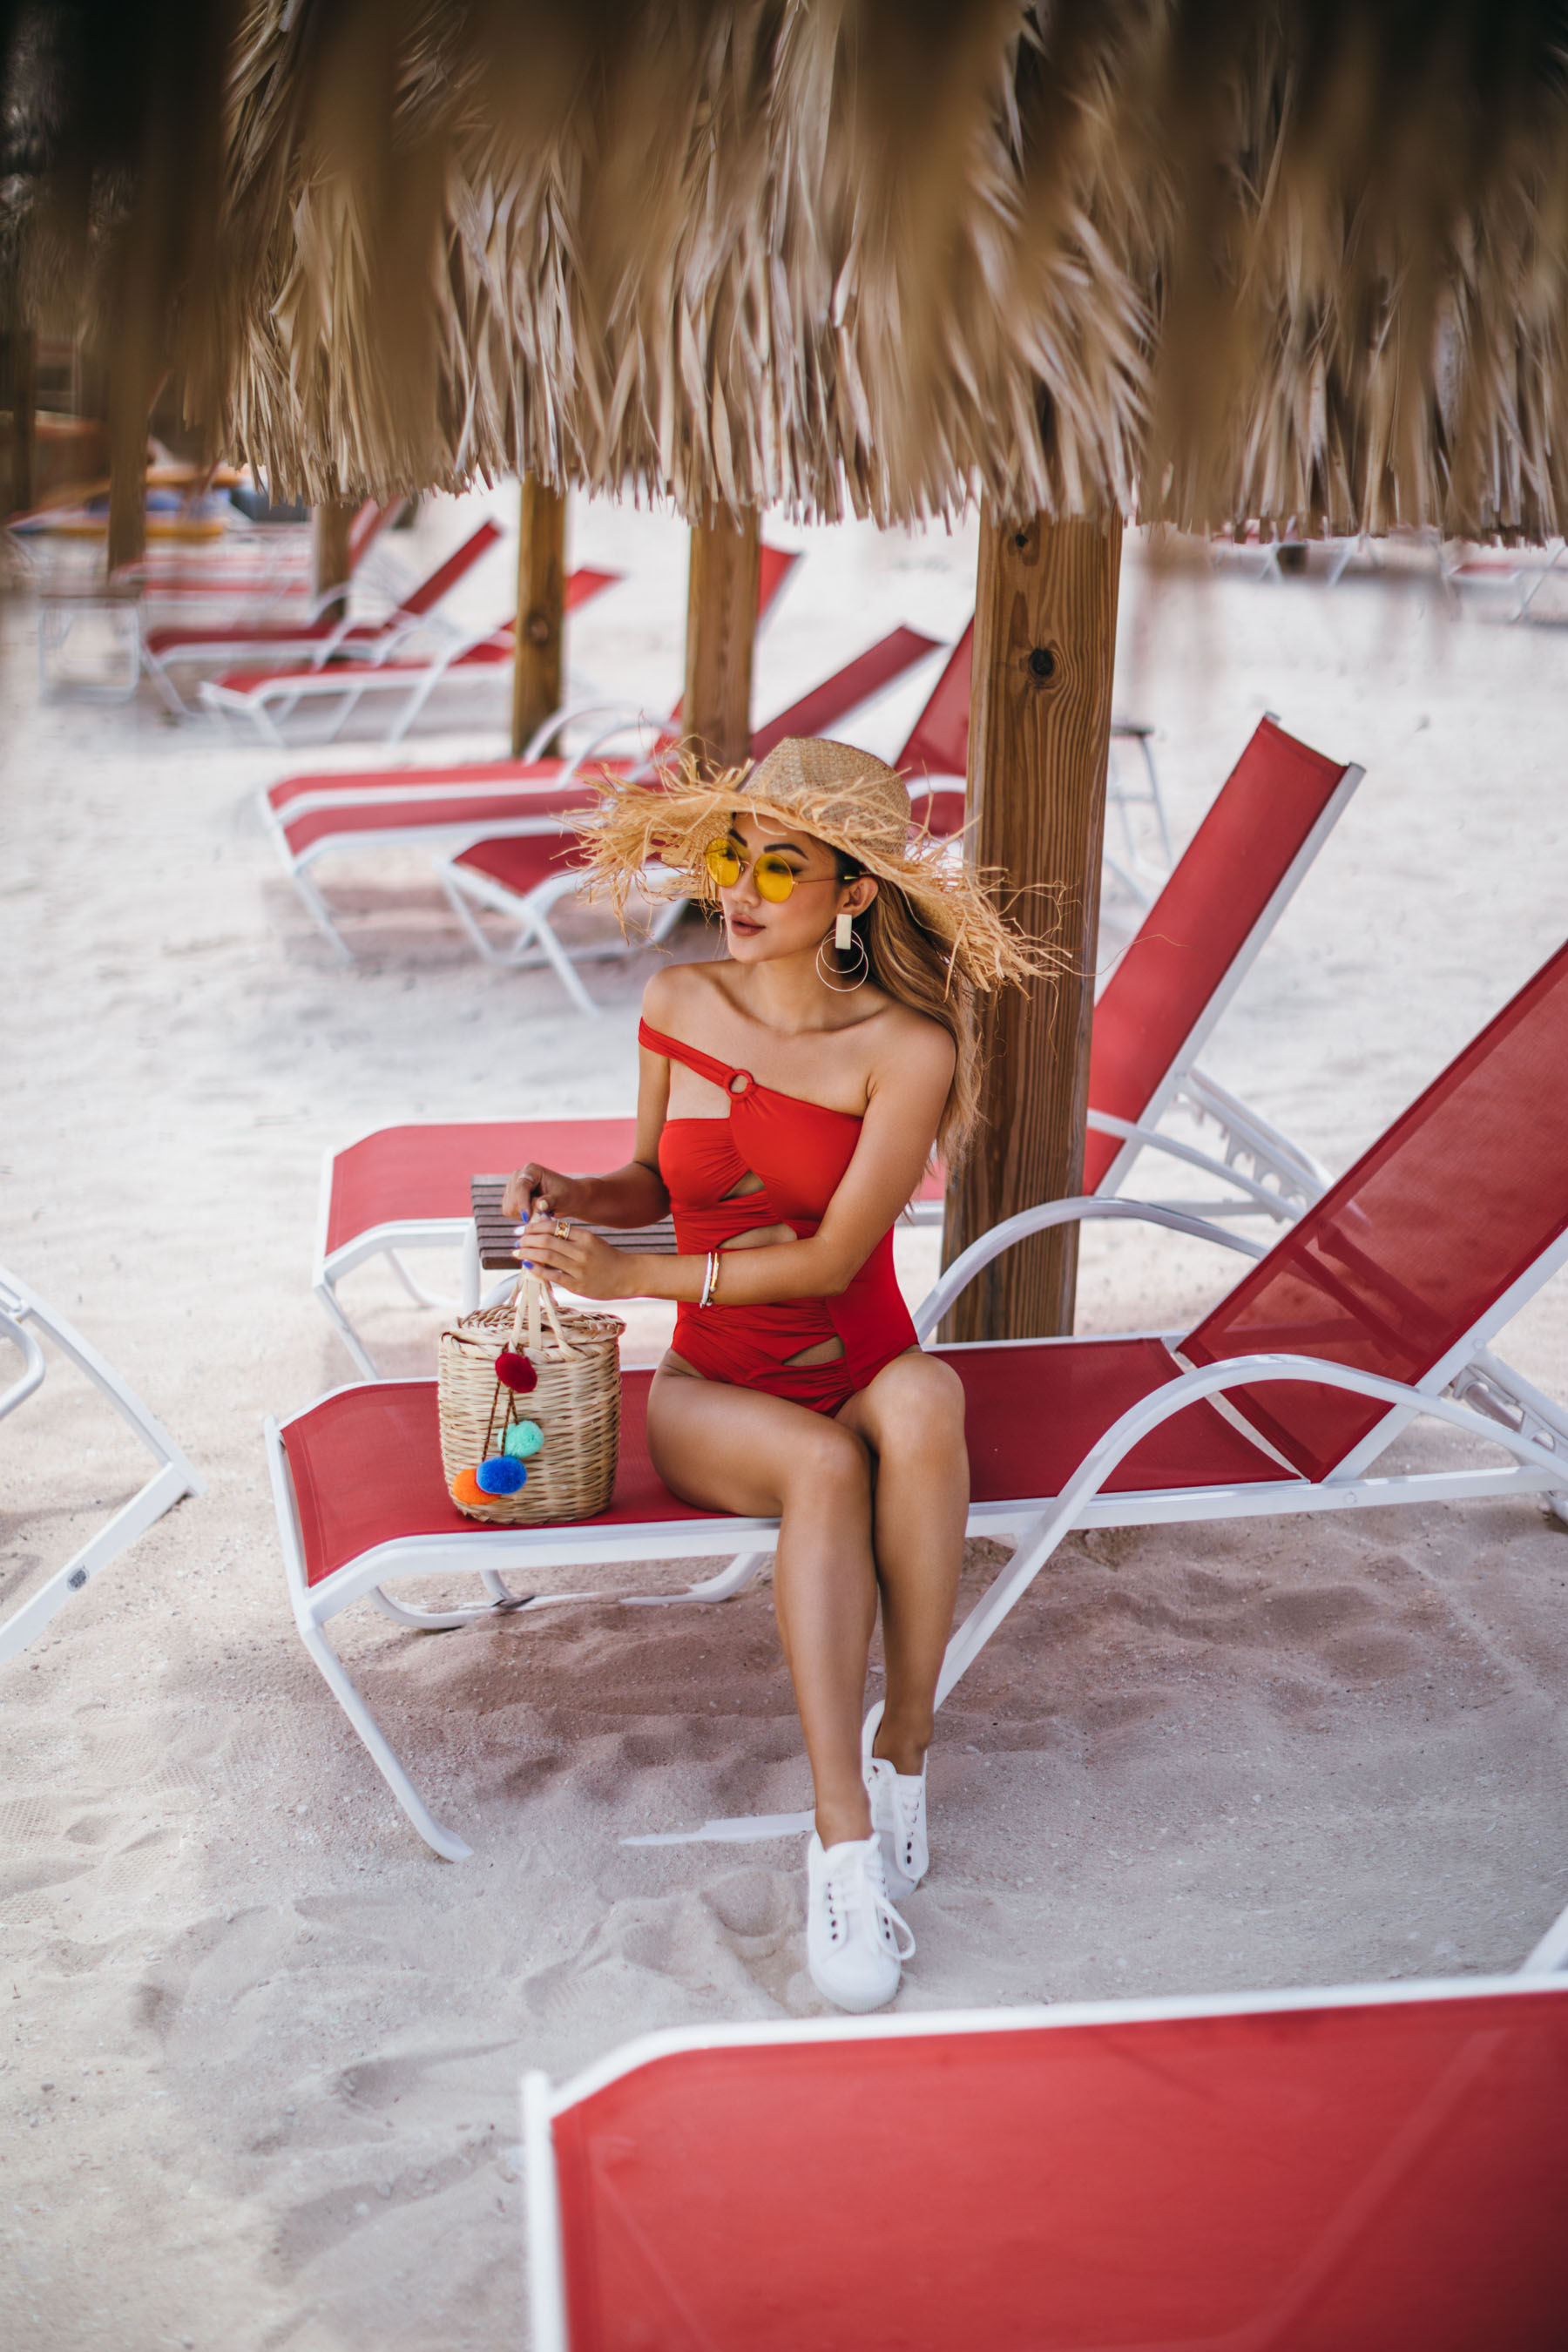 Fringe Hat and Red One Piece Swimsuit - How To Find The Perfect One Piece Swimsuit // NotJessFashion.com